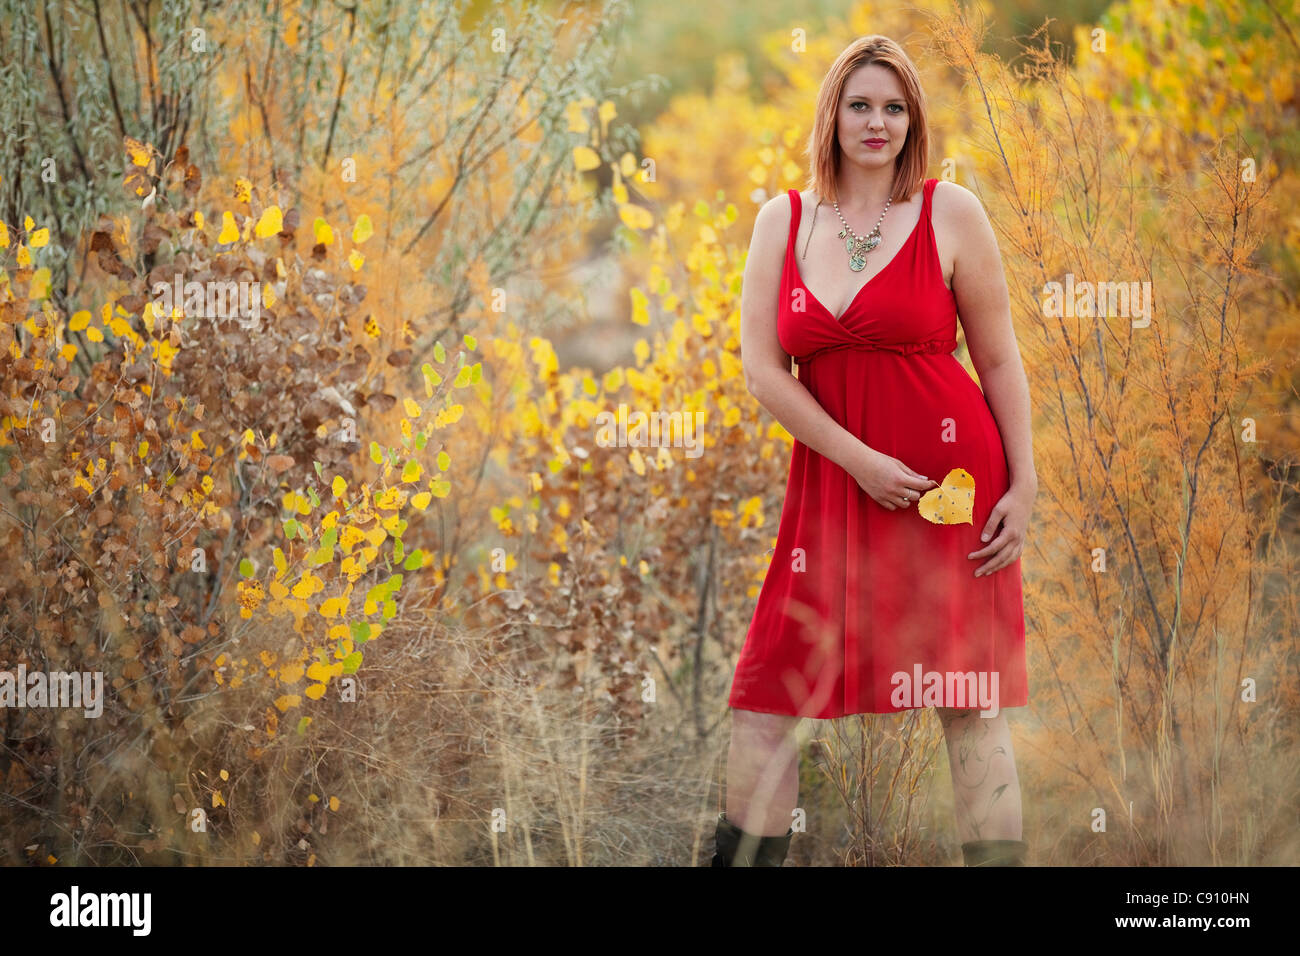 Beautiful Auburn Haired woman outdoors in nature, autumn. She is a Caucasian woman wearing a red dress.Stock Photo